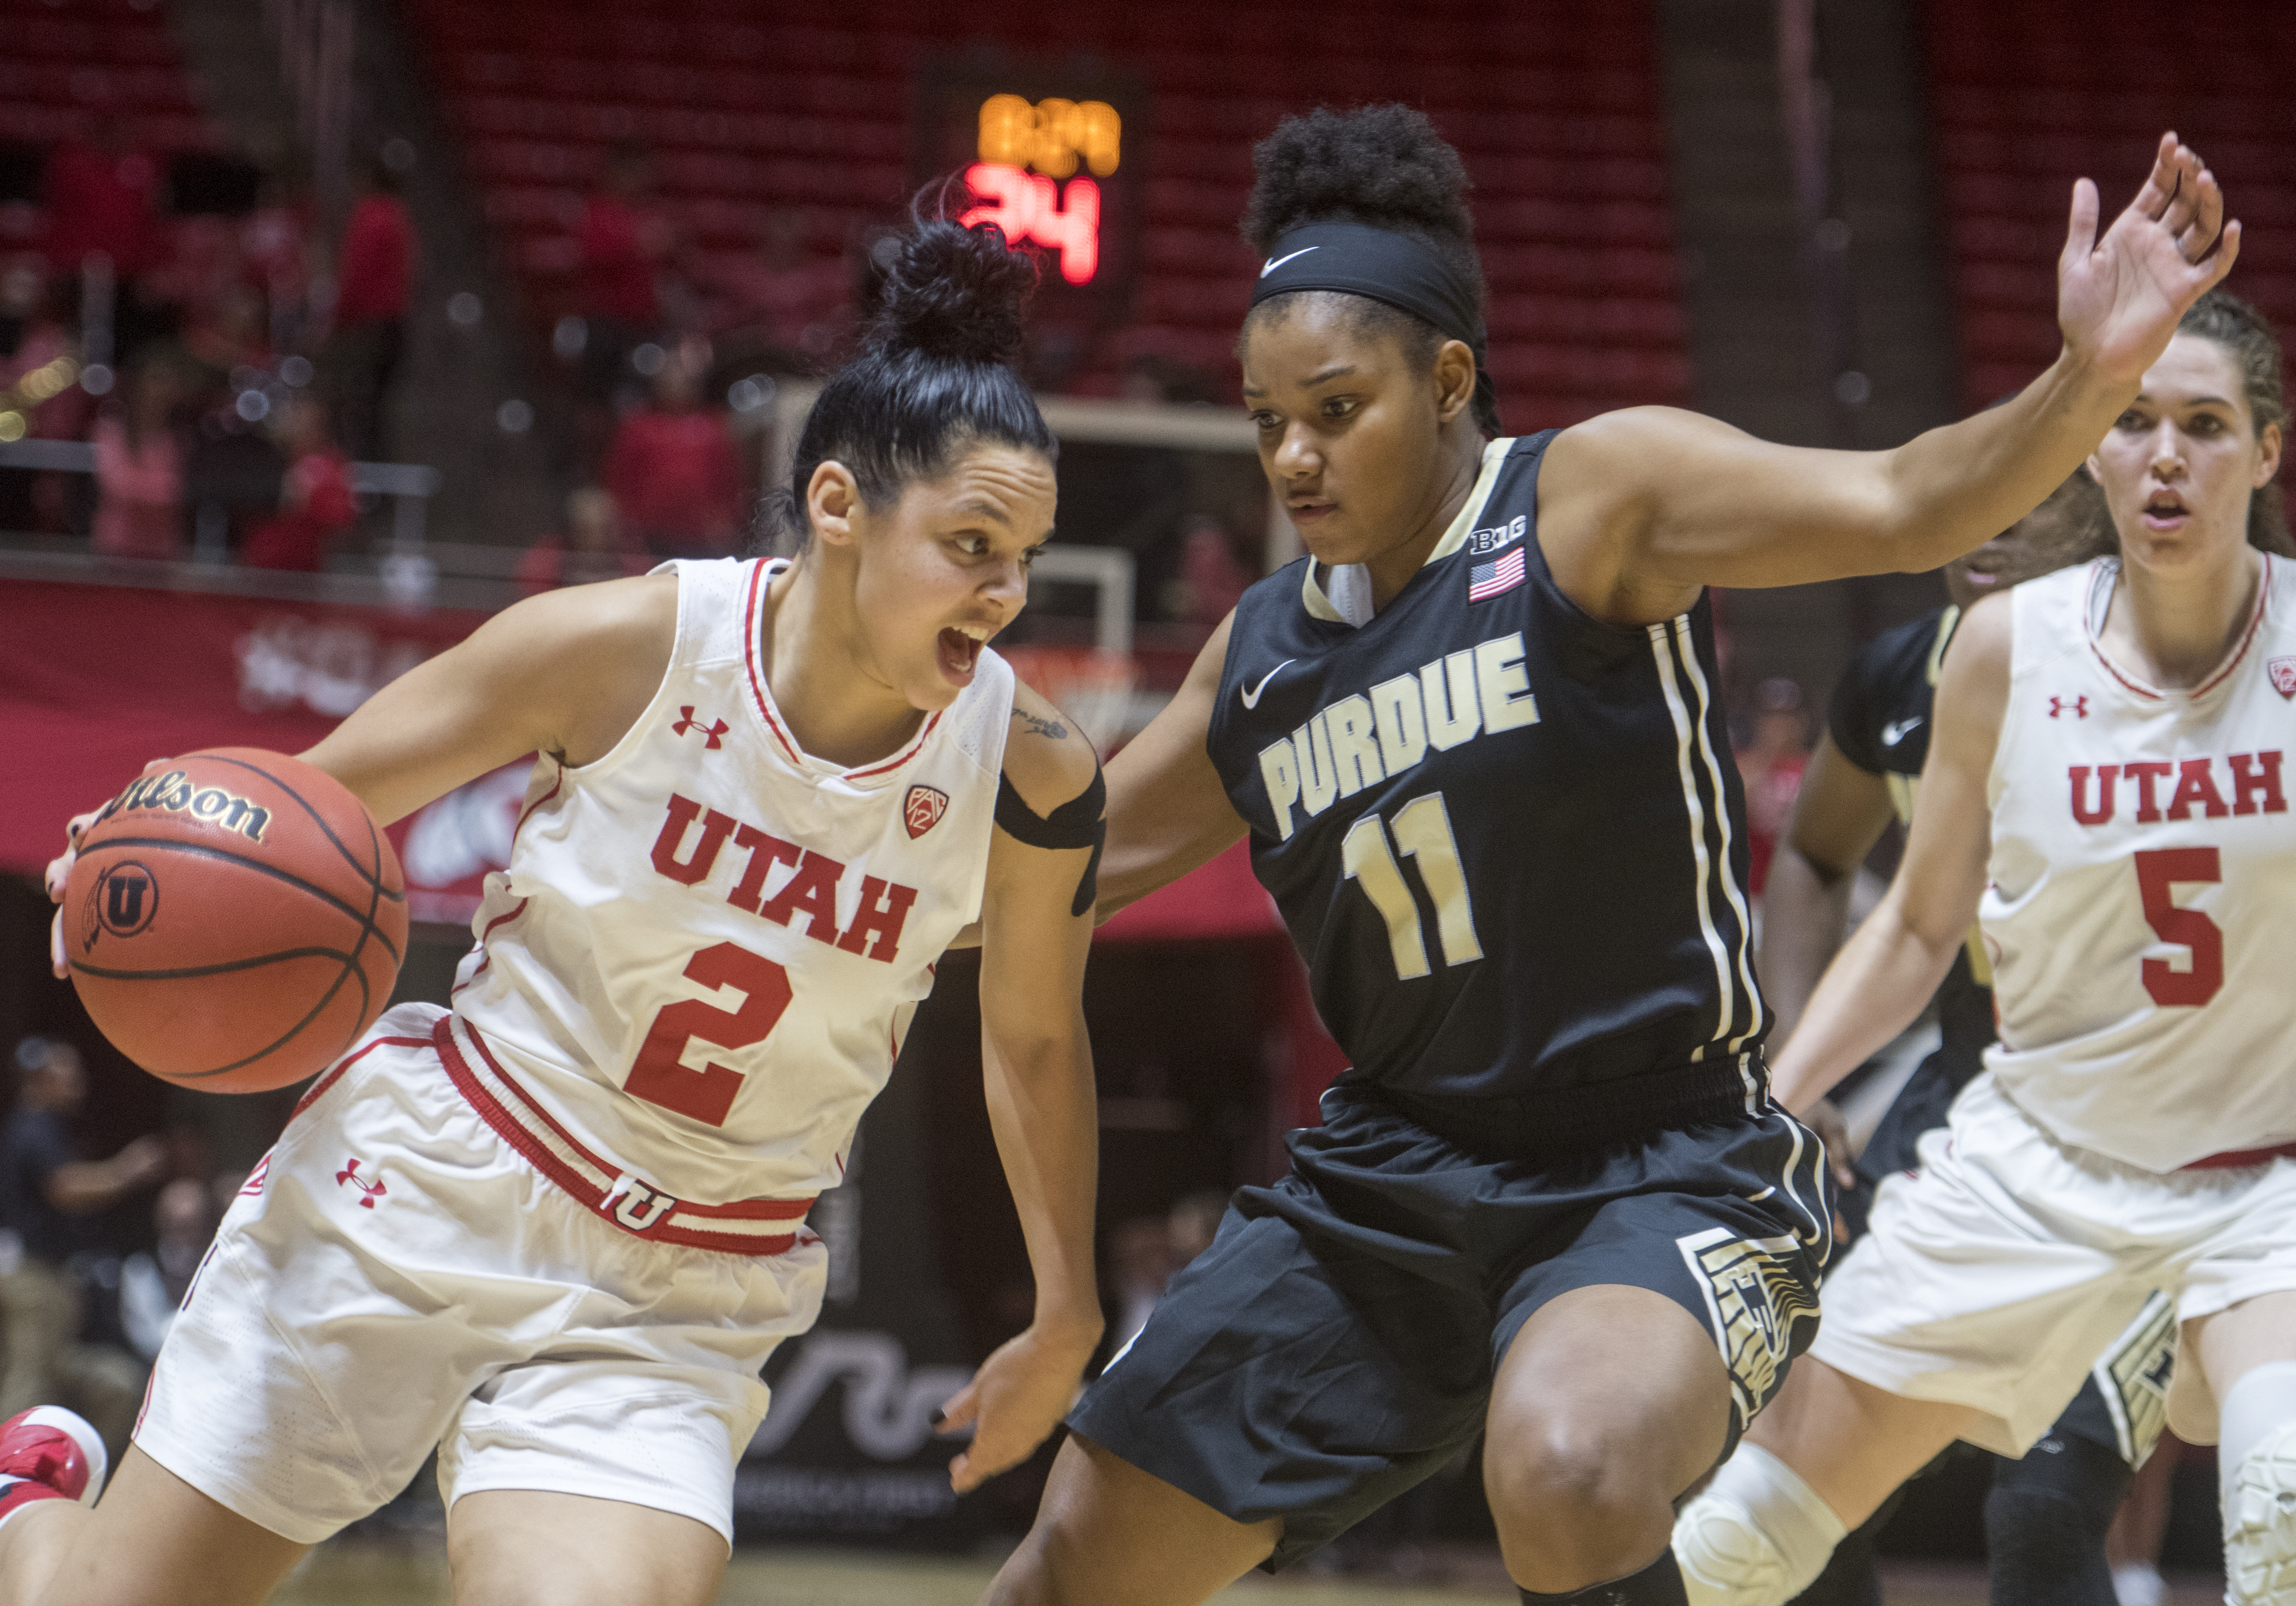 (Rick Egan  |  The Salt Lake Tribune)  Utah Utes guard Tori Williams (2) drives inside with the ball, as Purdue Boilermakers guard Dominique Oden (11) defends, in basketball action Utah Utes vs. Purdue Boilermakers, at the Thomas M. Huntsman Center, Monday, November 20, 2017.